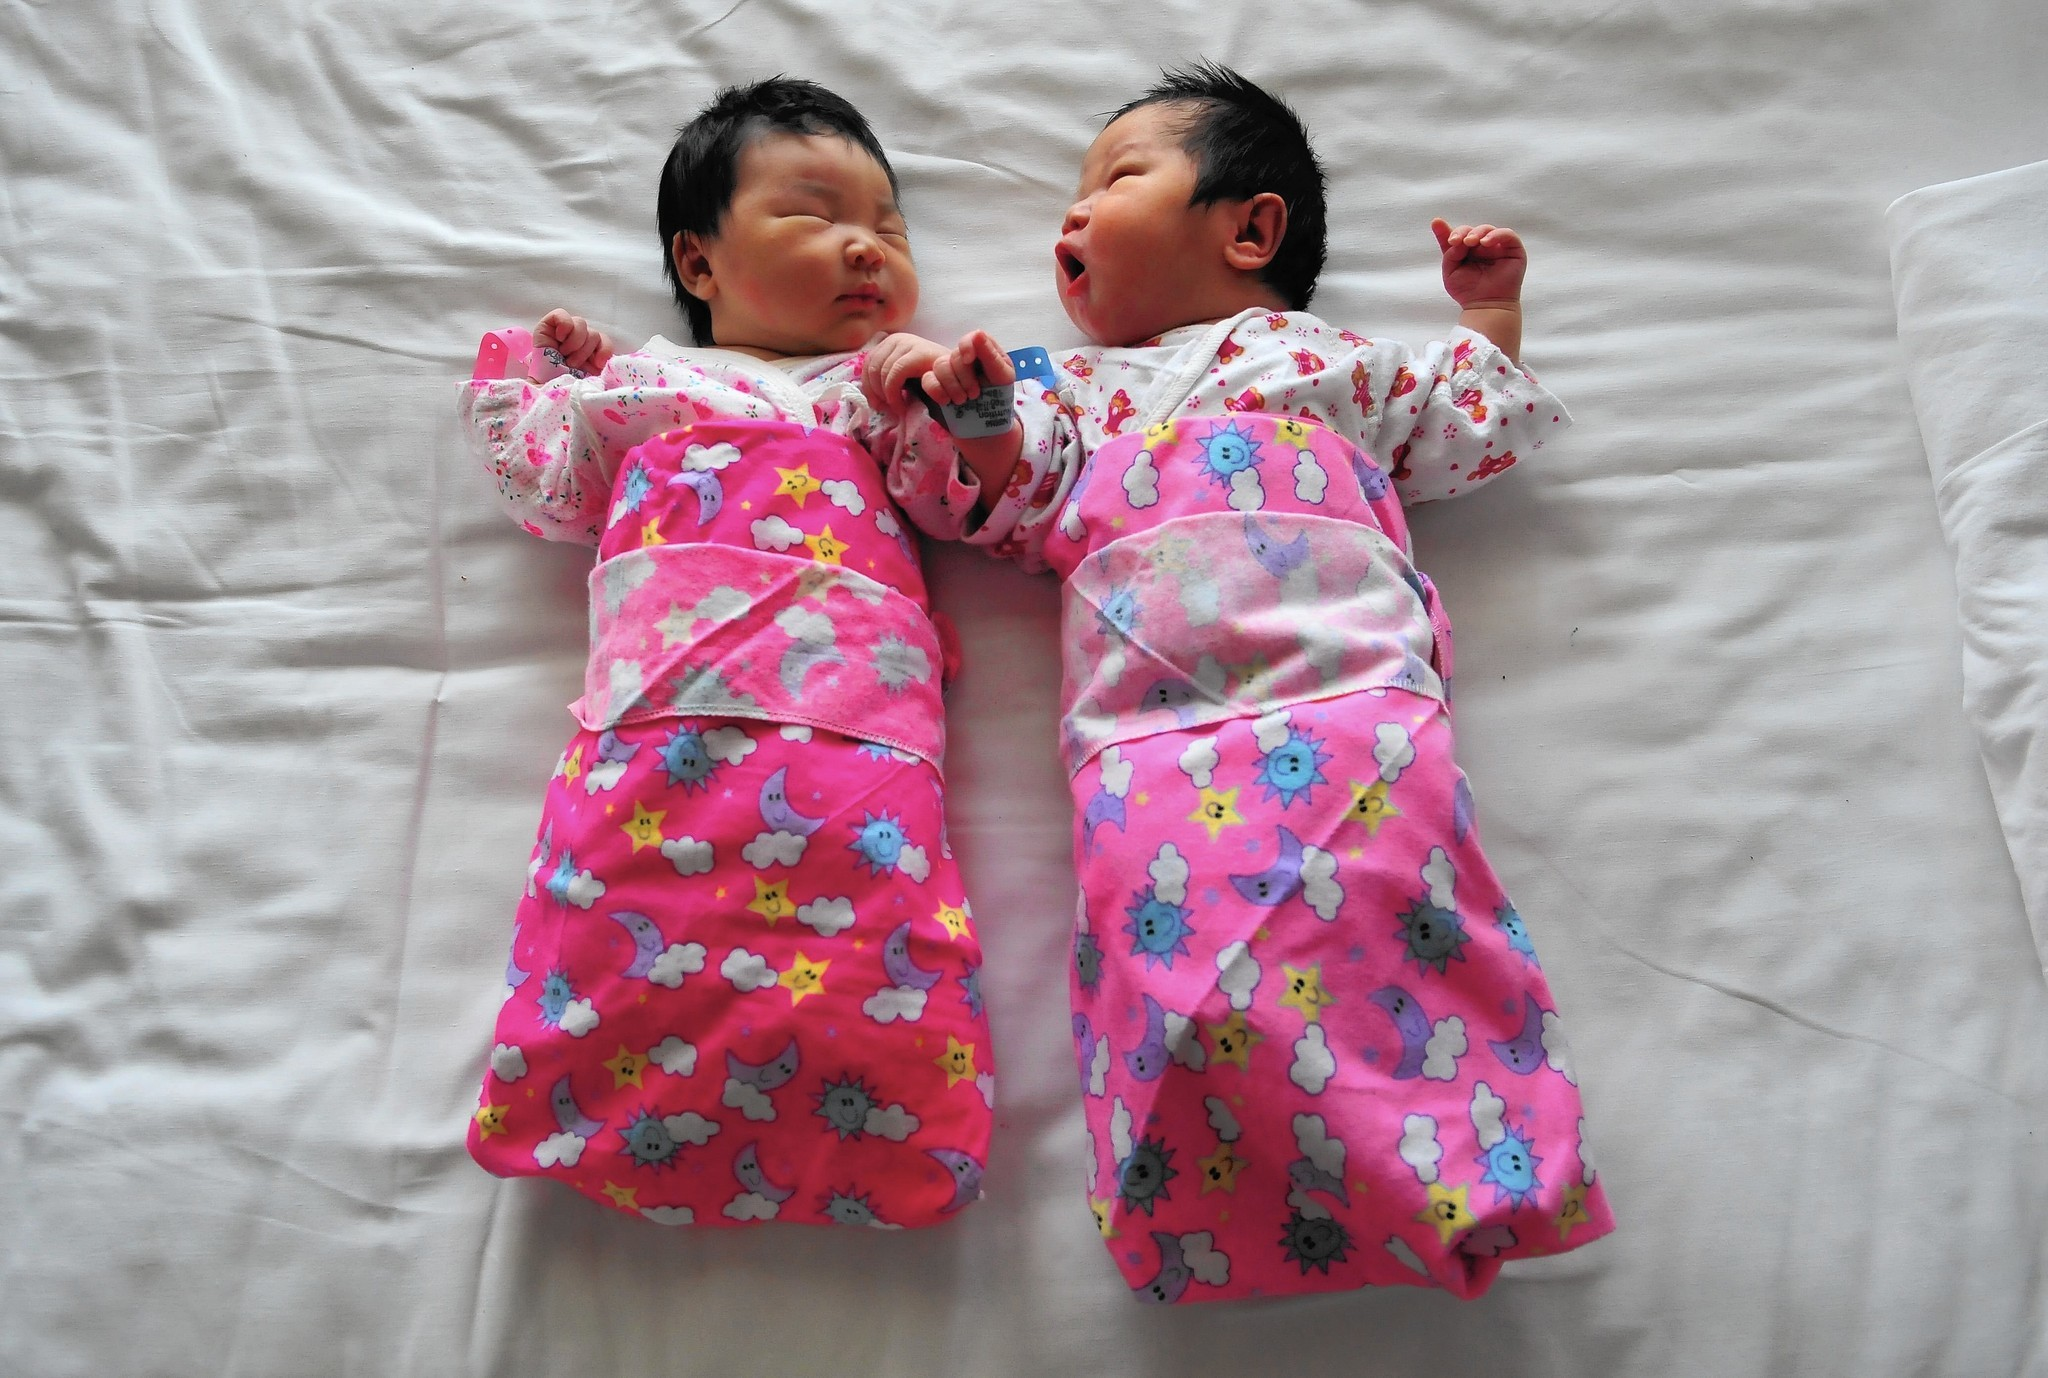 b2cc737a5a5 China s one-child policy ensured prosperity at a terrible price. Chinese  babies